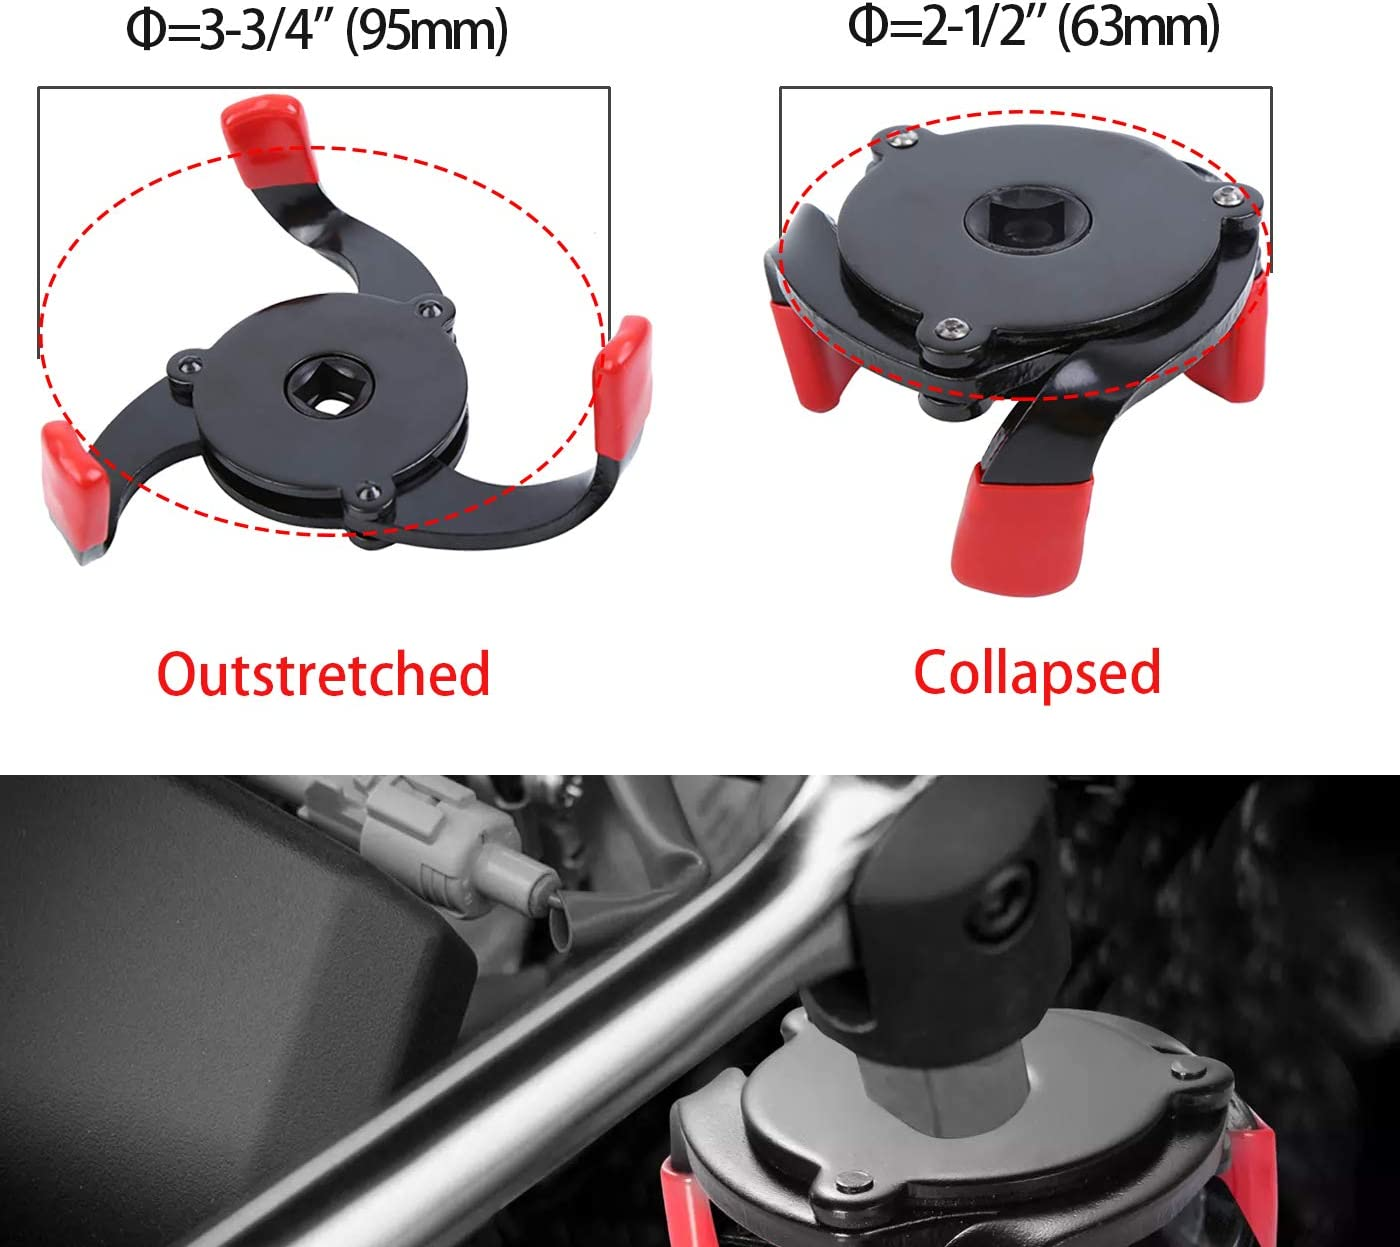 Eastyard Universal Oil Filter Wrench Adjustable 3 Jaw Engine Oil Filter Removal Tool with 1//2 Adapter 3//8 Square Drive Socket